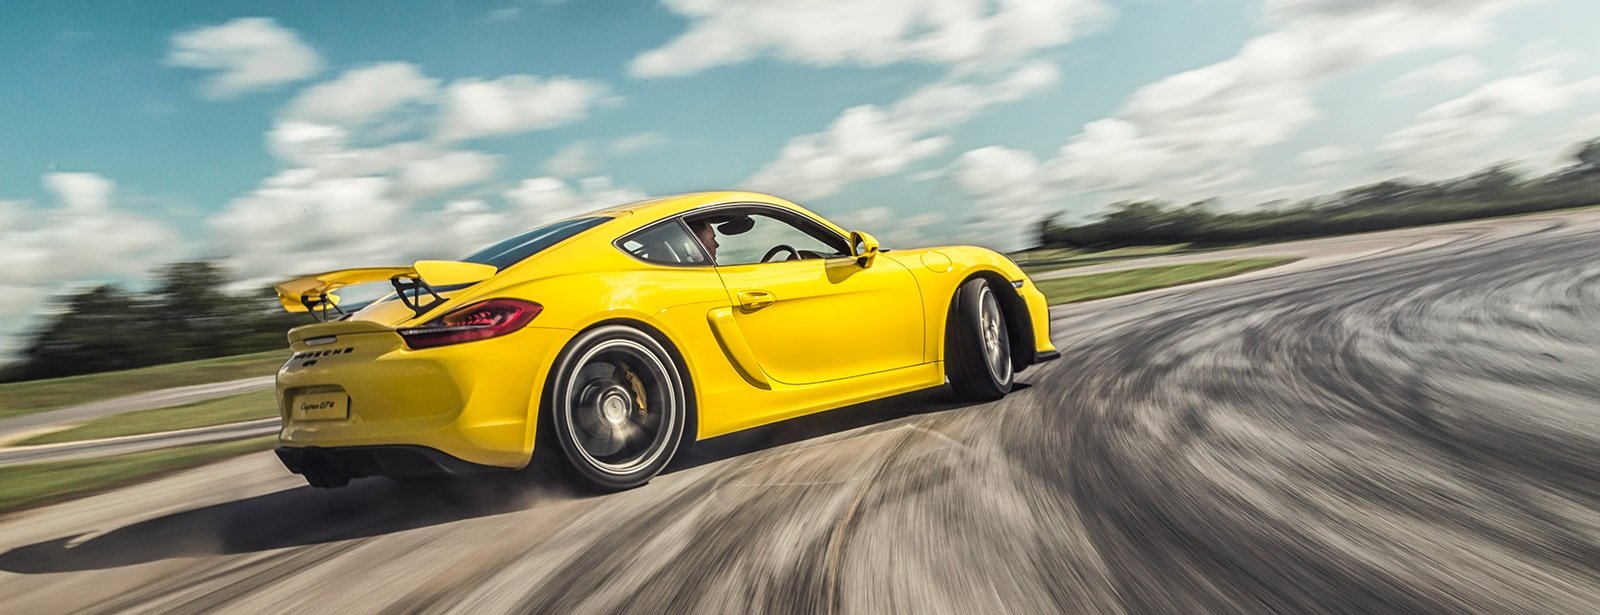 Porsche Experience Centre - Silverstone Circuit, NorthamptonshireFriday 17 to Sunday 19 July 2020 (TBC)From £495 + VAT Per Person (TBC)